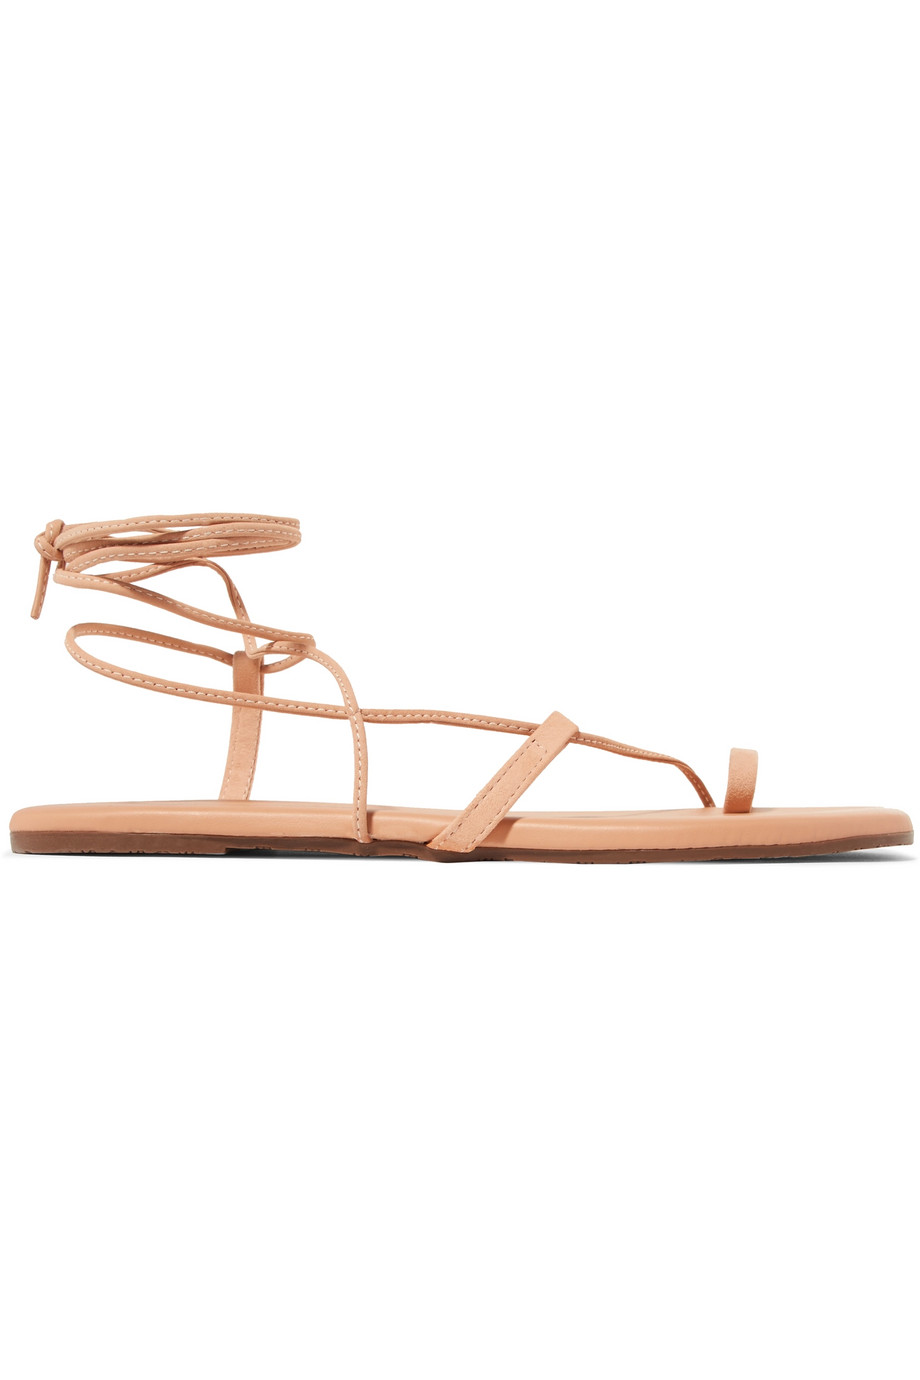 Tkees leather sandals